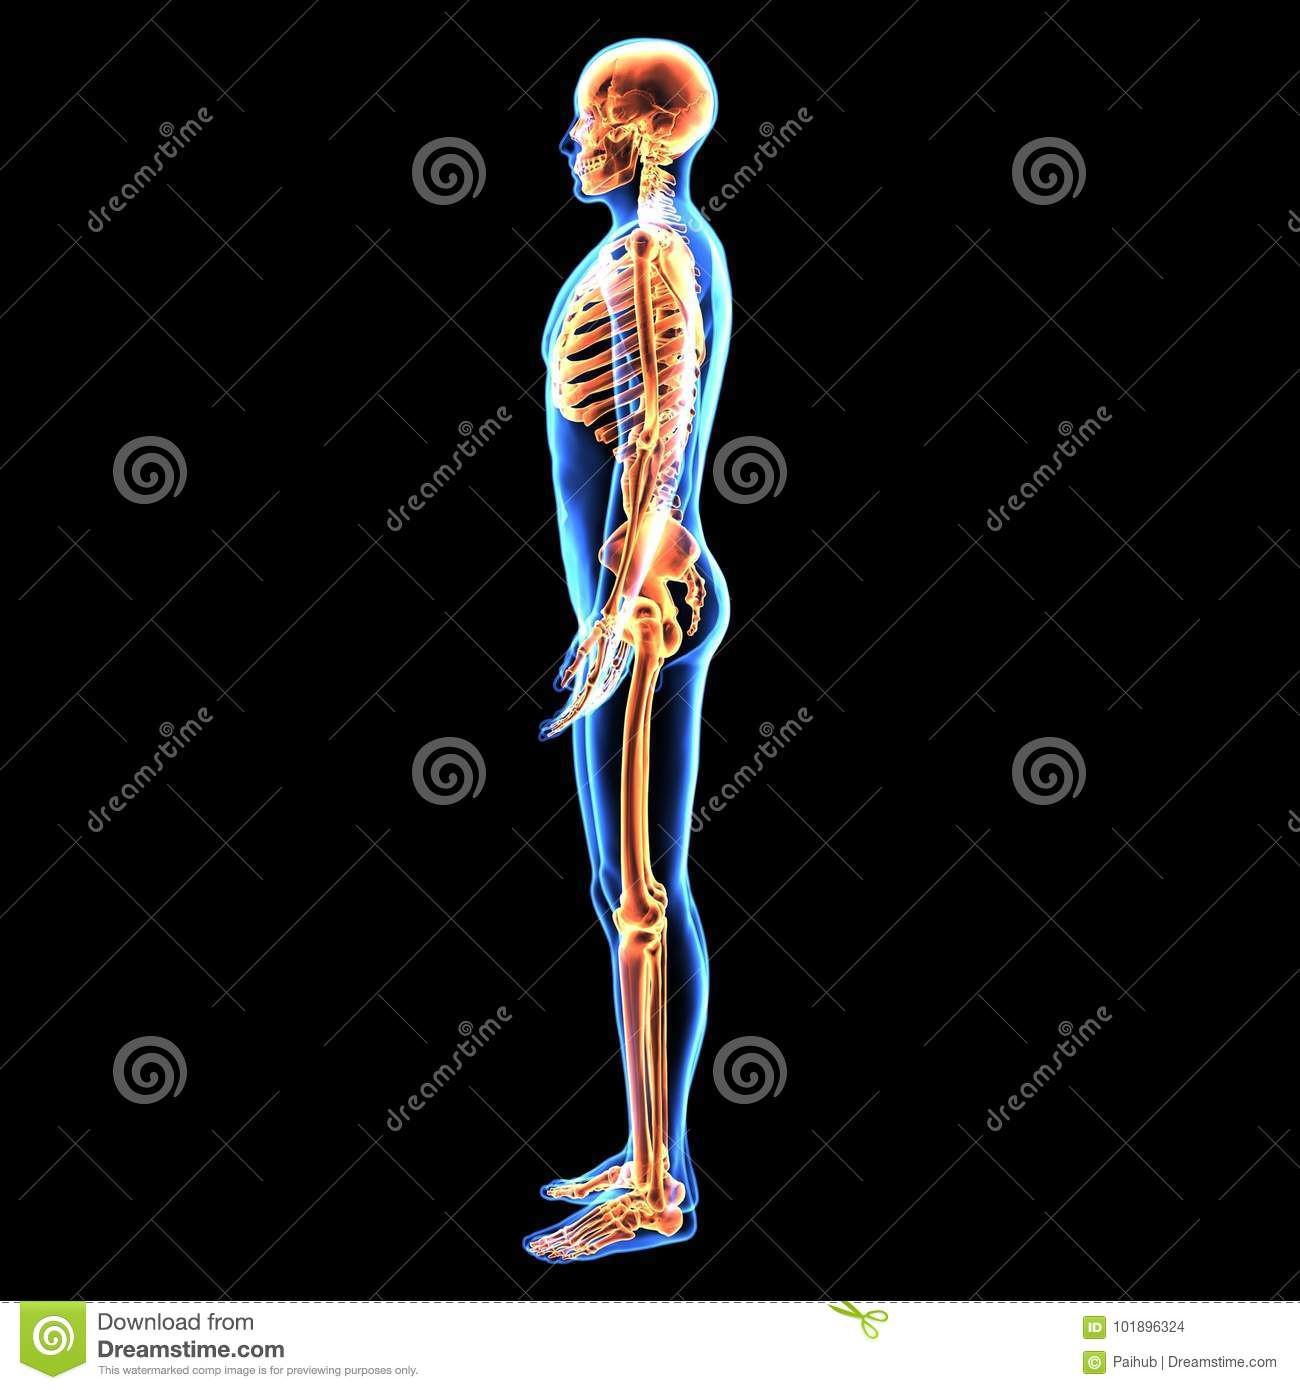 3d illustration of human body skeleton anatomy stock illustration download 3d illustration of human body skeleton anatomy stock illustration illustration of body bone ccuart Image collections